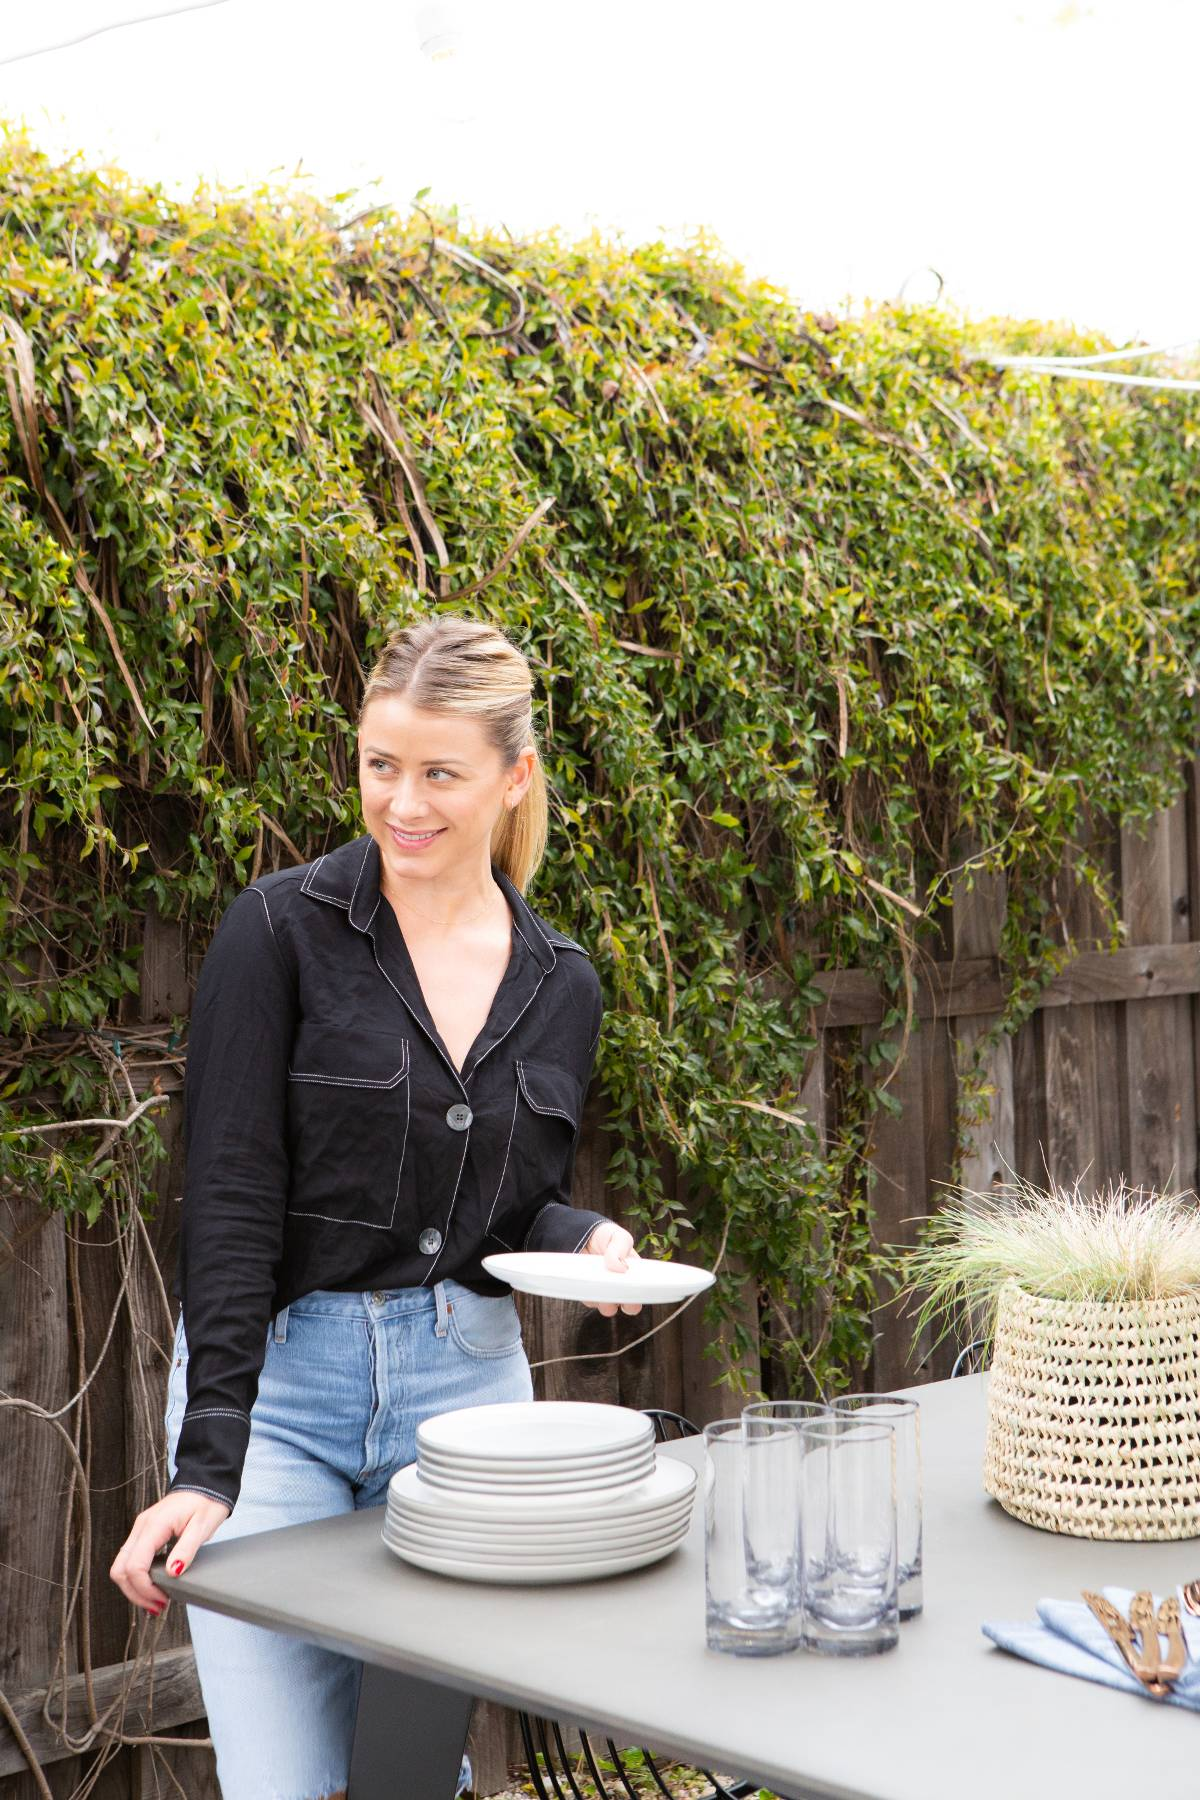 lo bosworth los angeles home 260537 1528989525081 image.1200x0c - A Casa da Lo Bosworth em LA